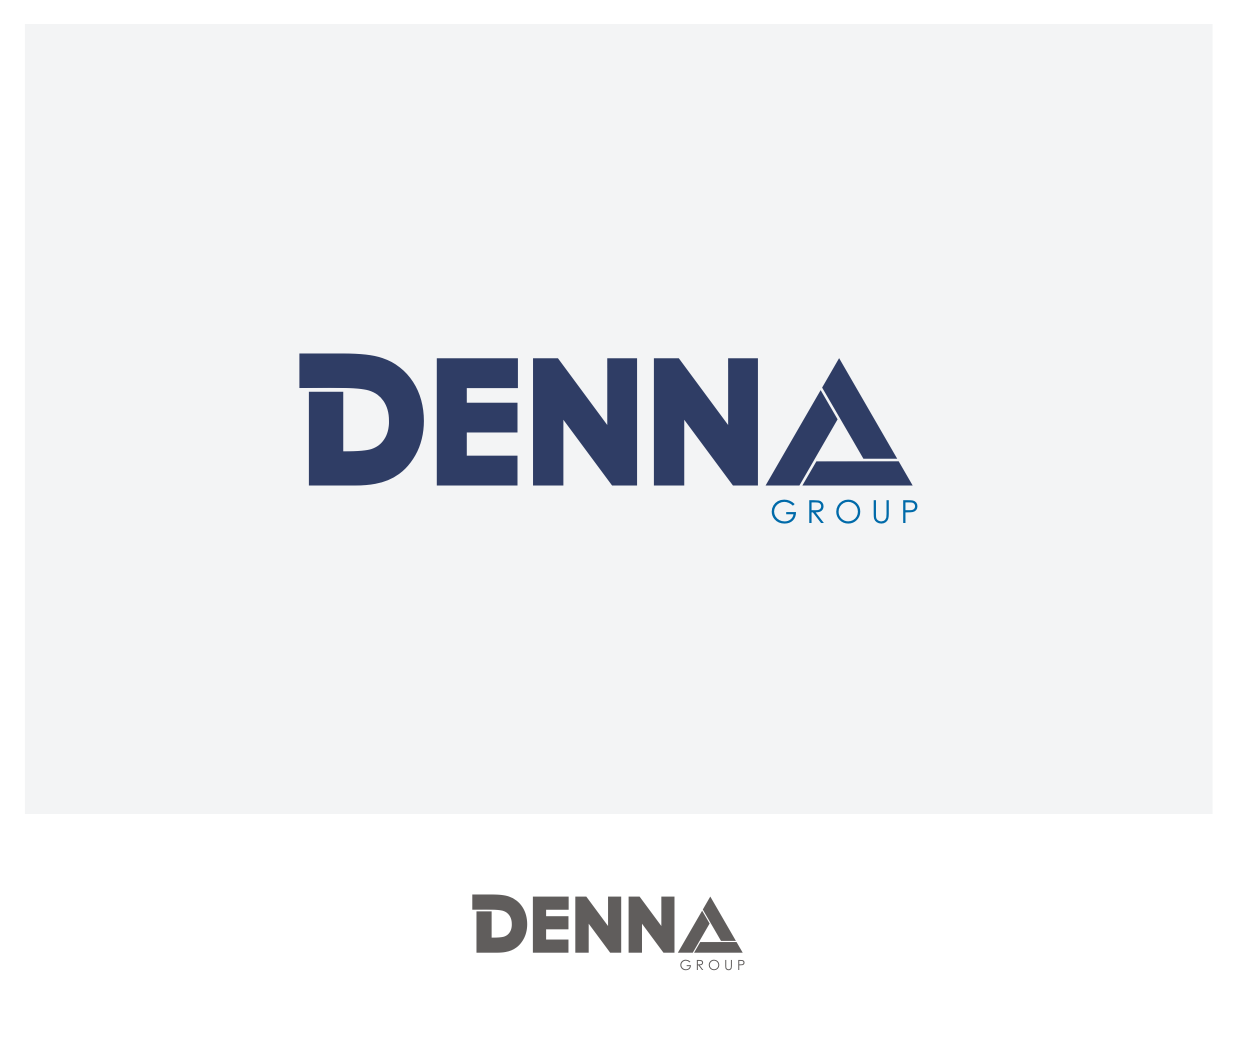 Logo Design by Joe Teach - Entry No. 69 in the Logo Design Contest Denna Group Logo Design.